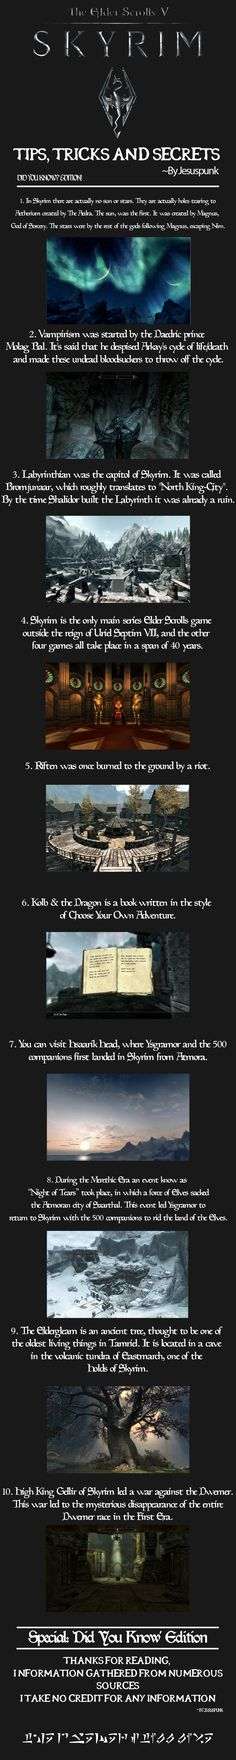 Skyrim - Tips, Tricks and Secrets! {Special Edition}